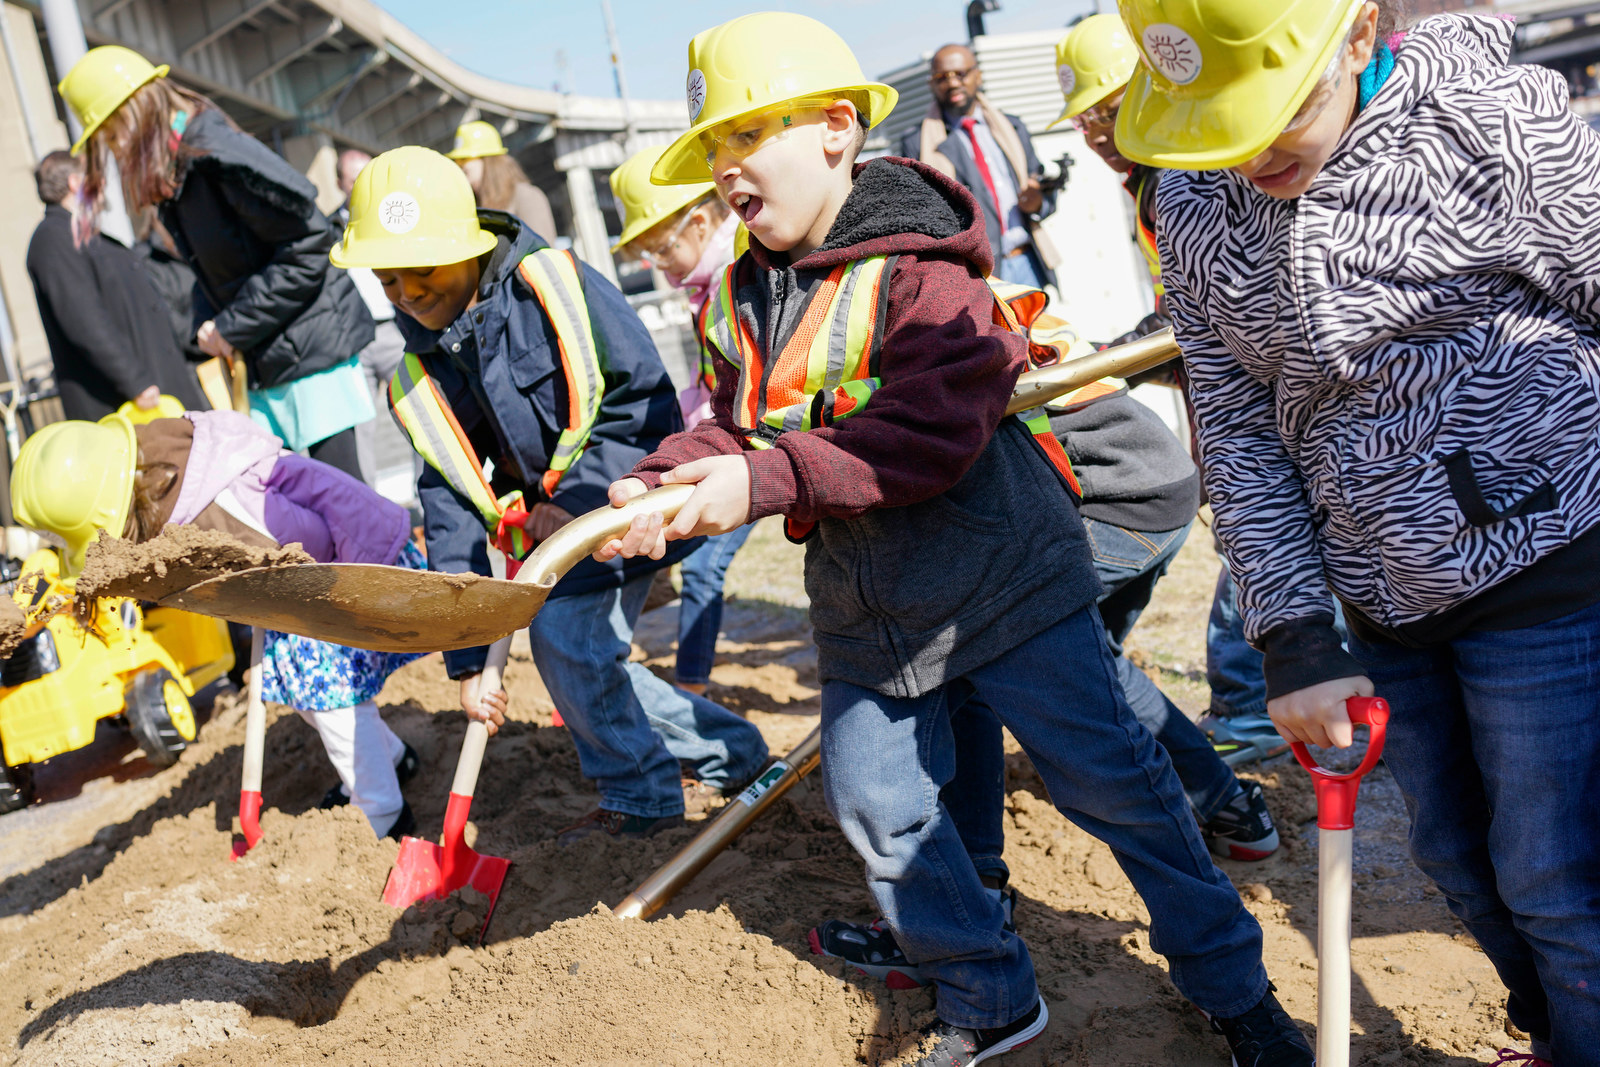 Second grade students from Waterfront Elementary have fun digging in the dirt at the groundbreaking for the new Explore & More Children's Museum at Canalside, Wednesday, March 29, 2017.  (Derek Gee/Buffalo News)